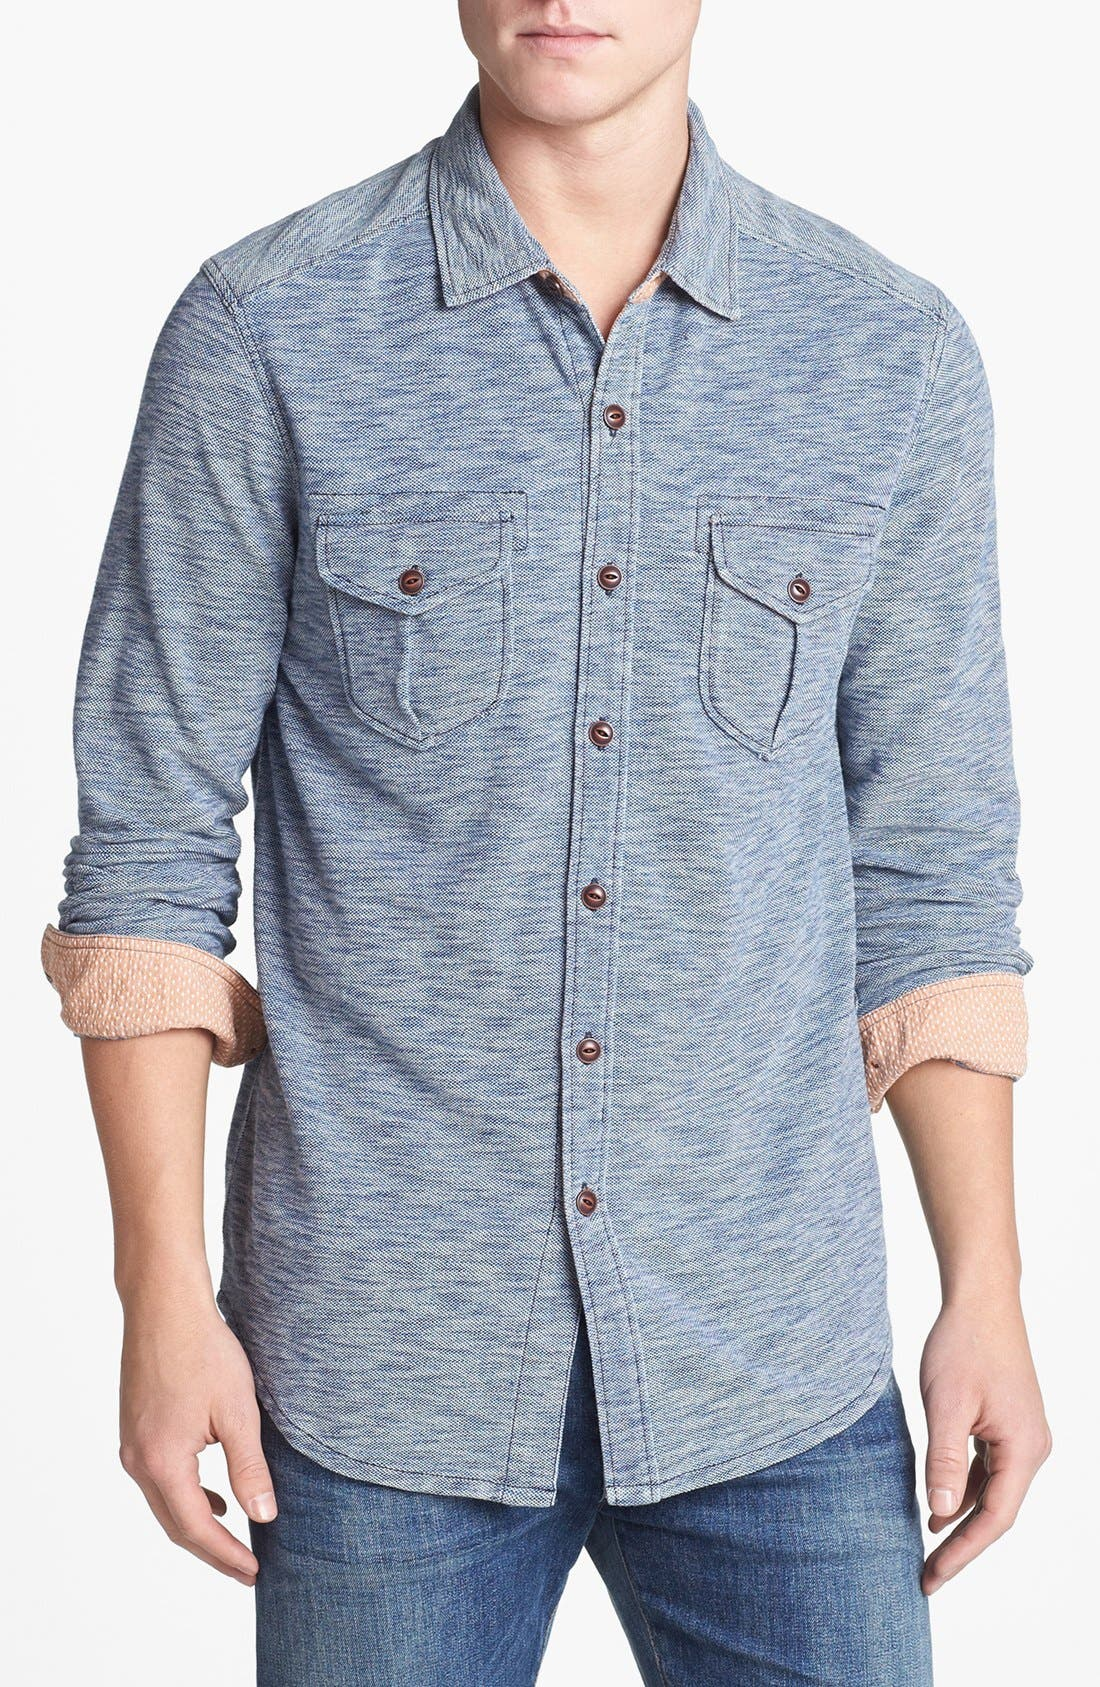 Alternate Image 1 Selected - Tommy Bahama Denim 'Slub Life' Pique Island Modern Fit Sport Shirt